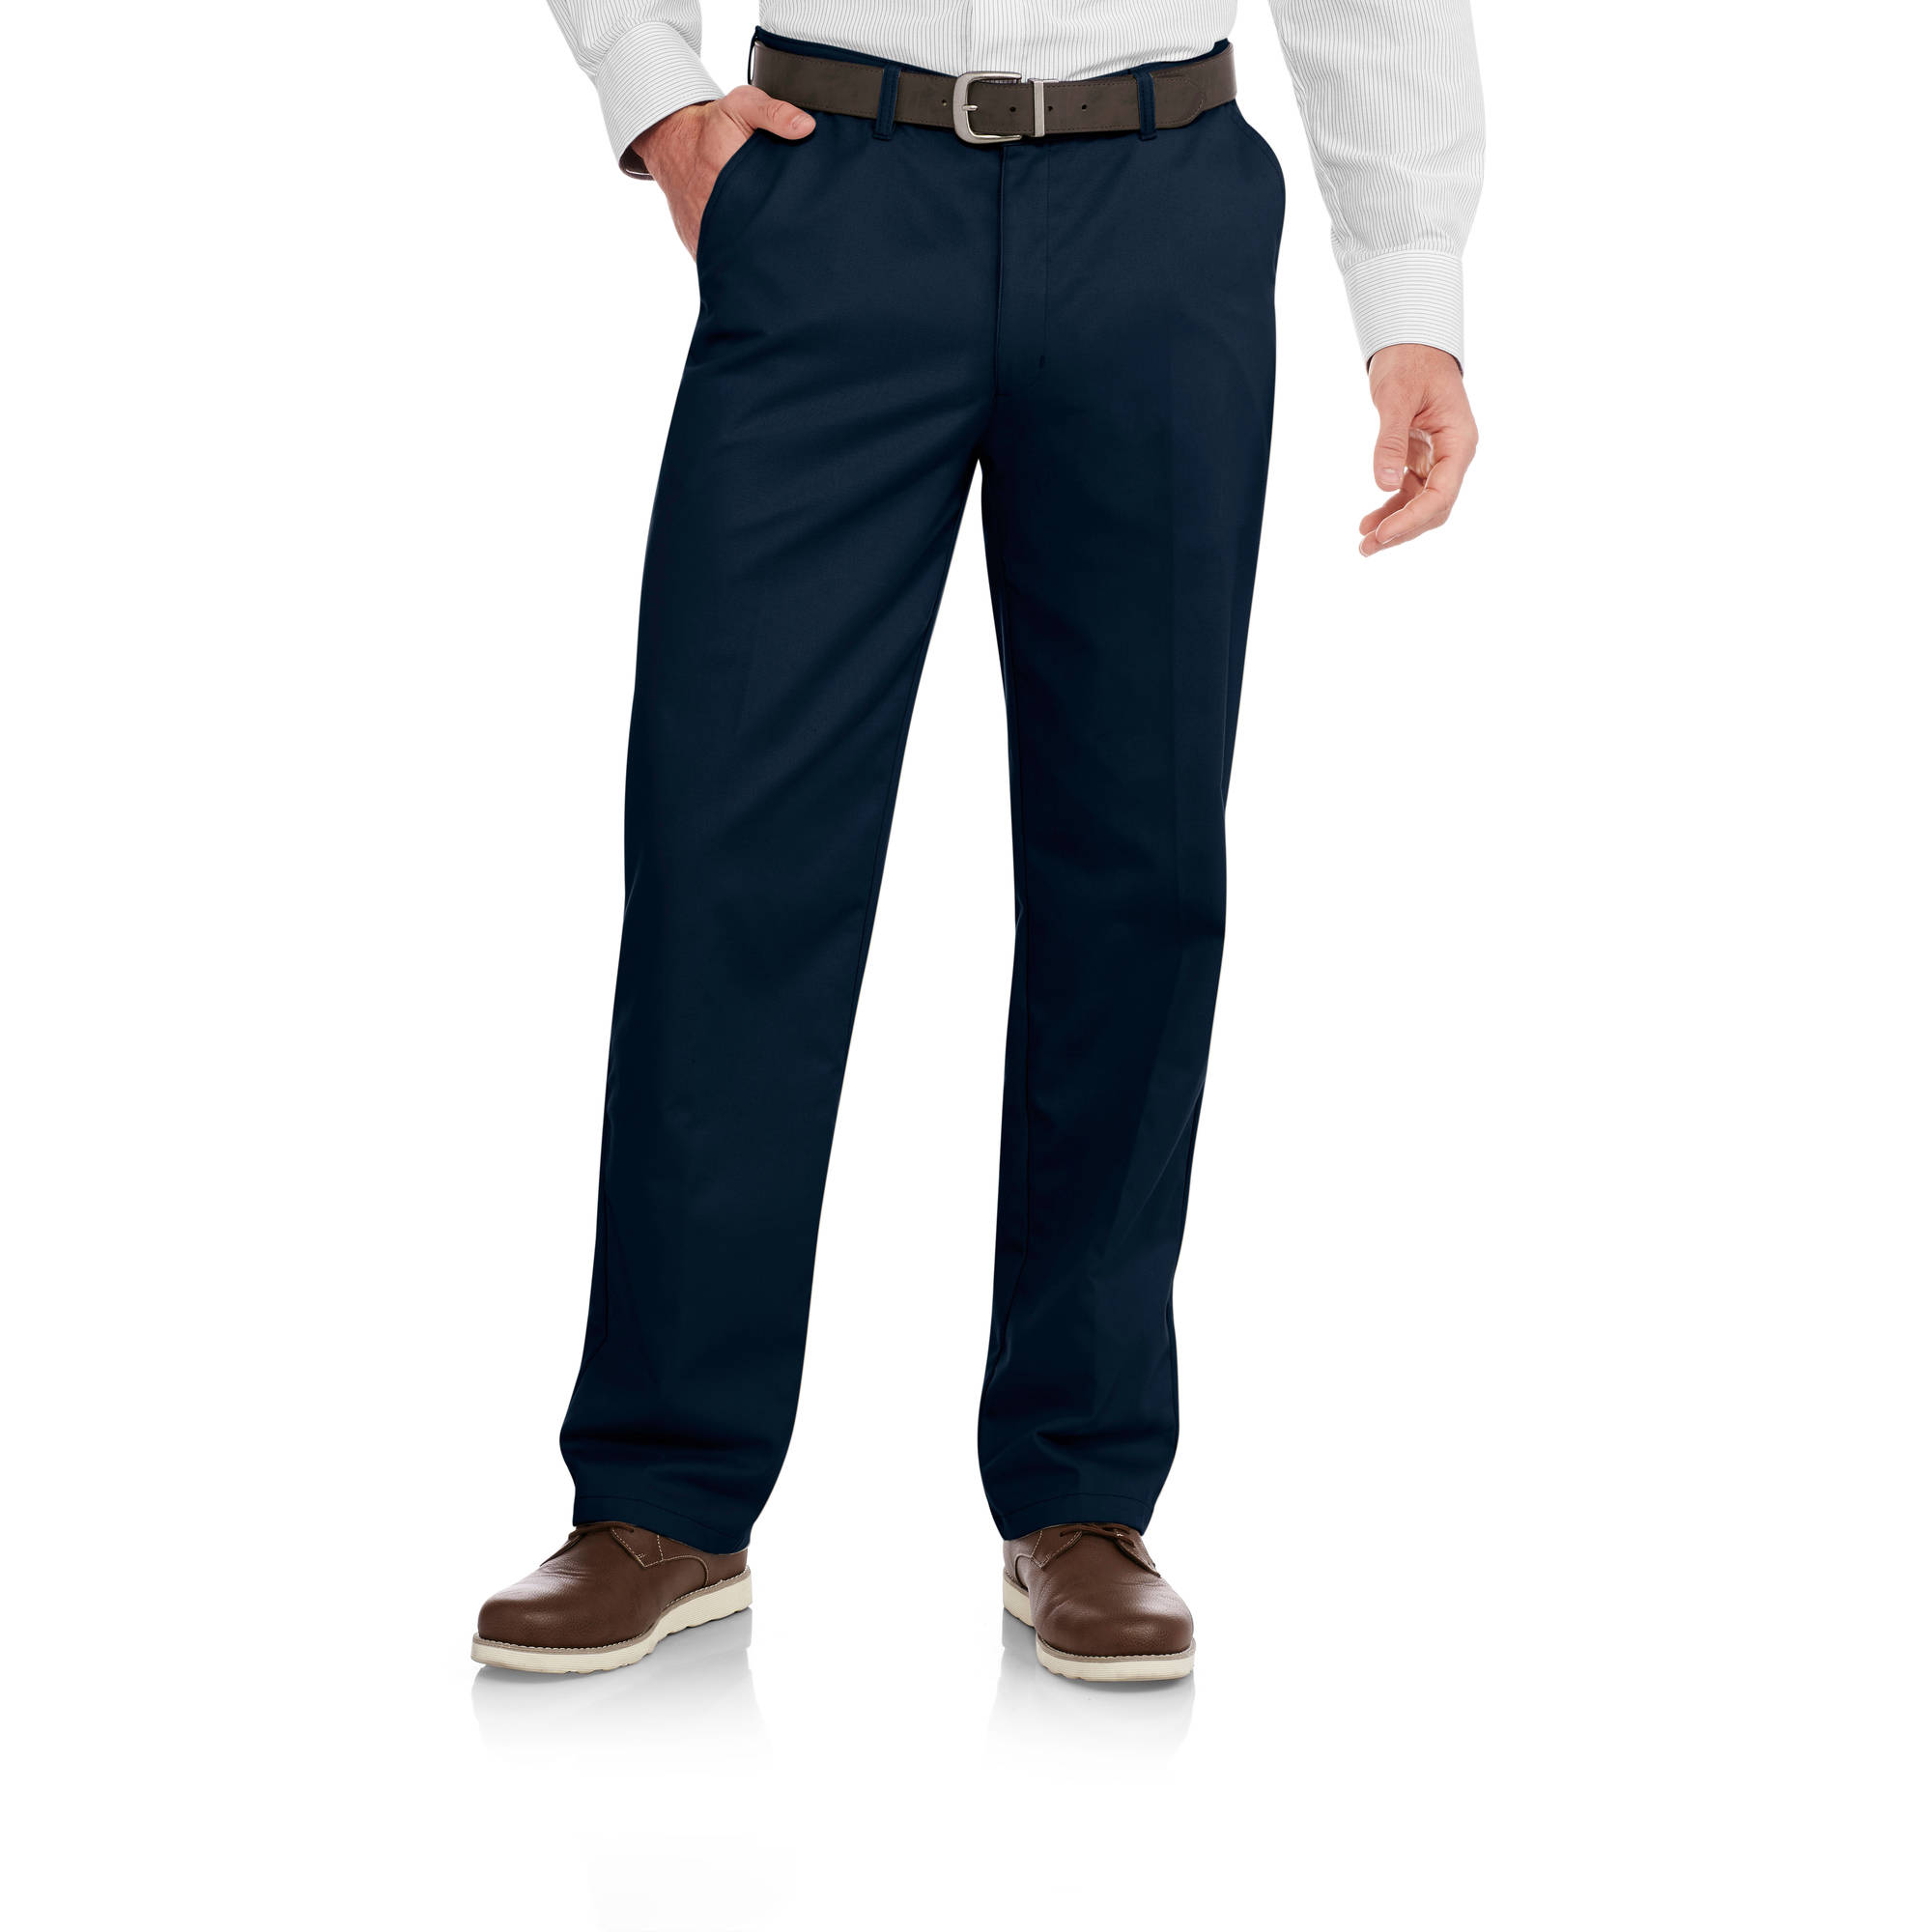 George Men's Wrinkle Resistant Flat Front 100% Cotton Twill Pant with Scotchgard